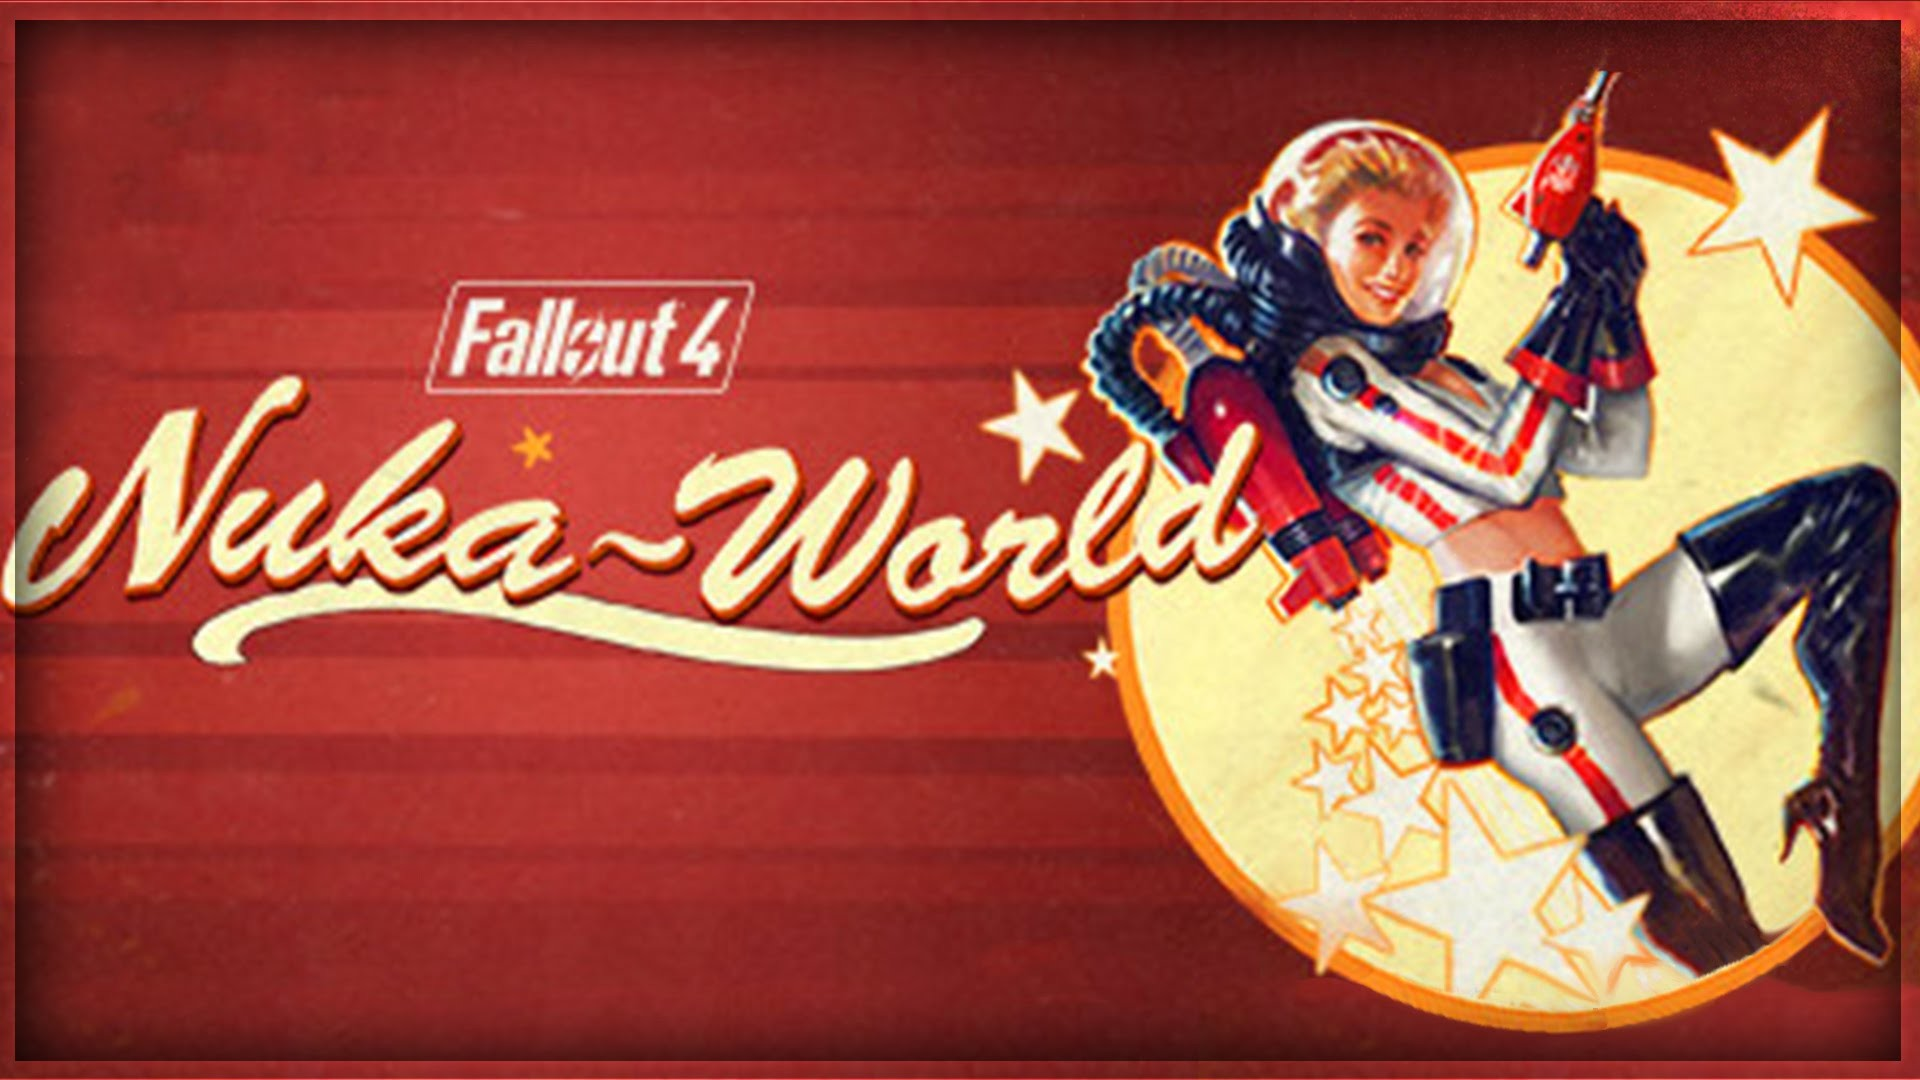 1920x1200 Fallout Nuka Cola Quantum Enclave Soldiers Video Games Wallpaper 867836 Wallbase